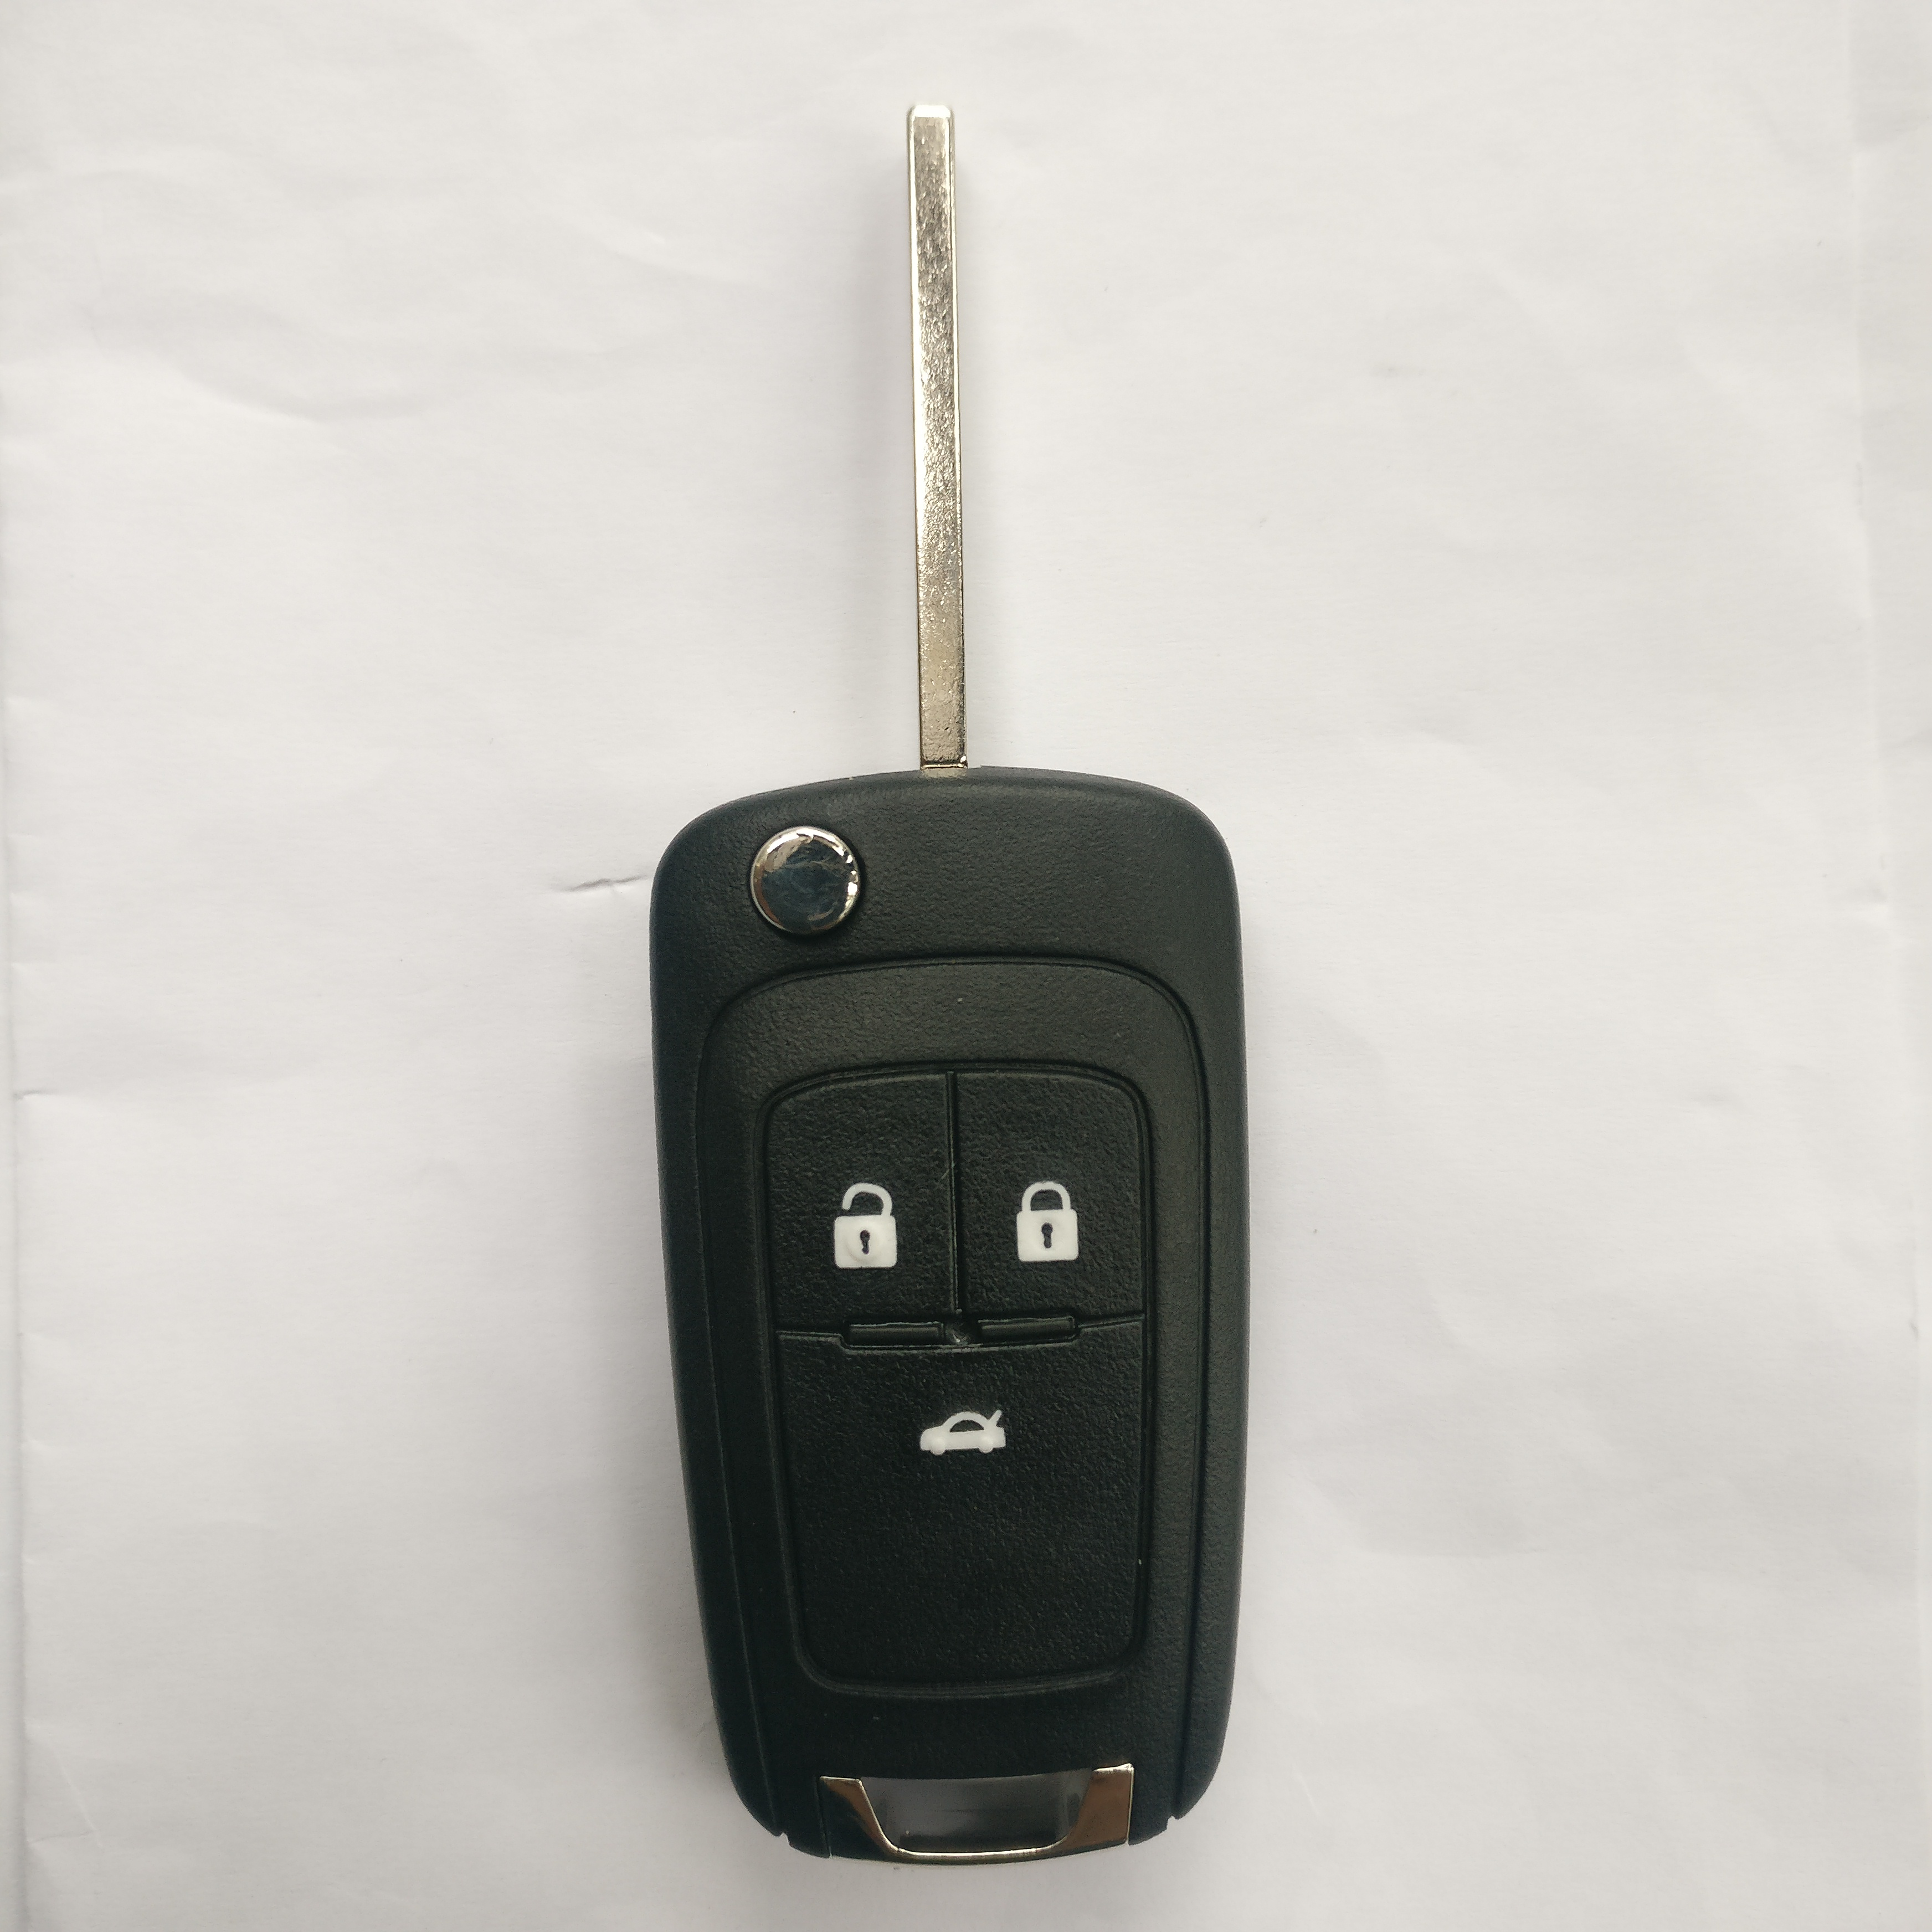 3 Buttons 315 Mhz Flip Remote Key for Buick